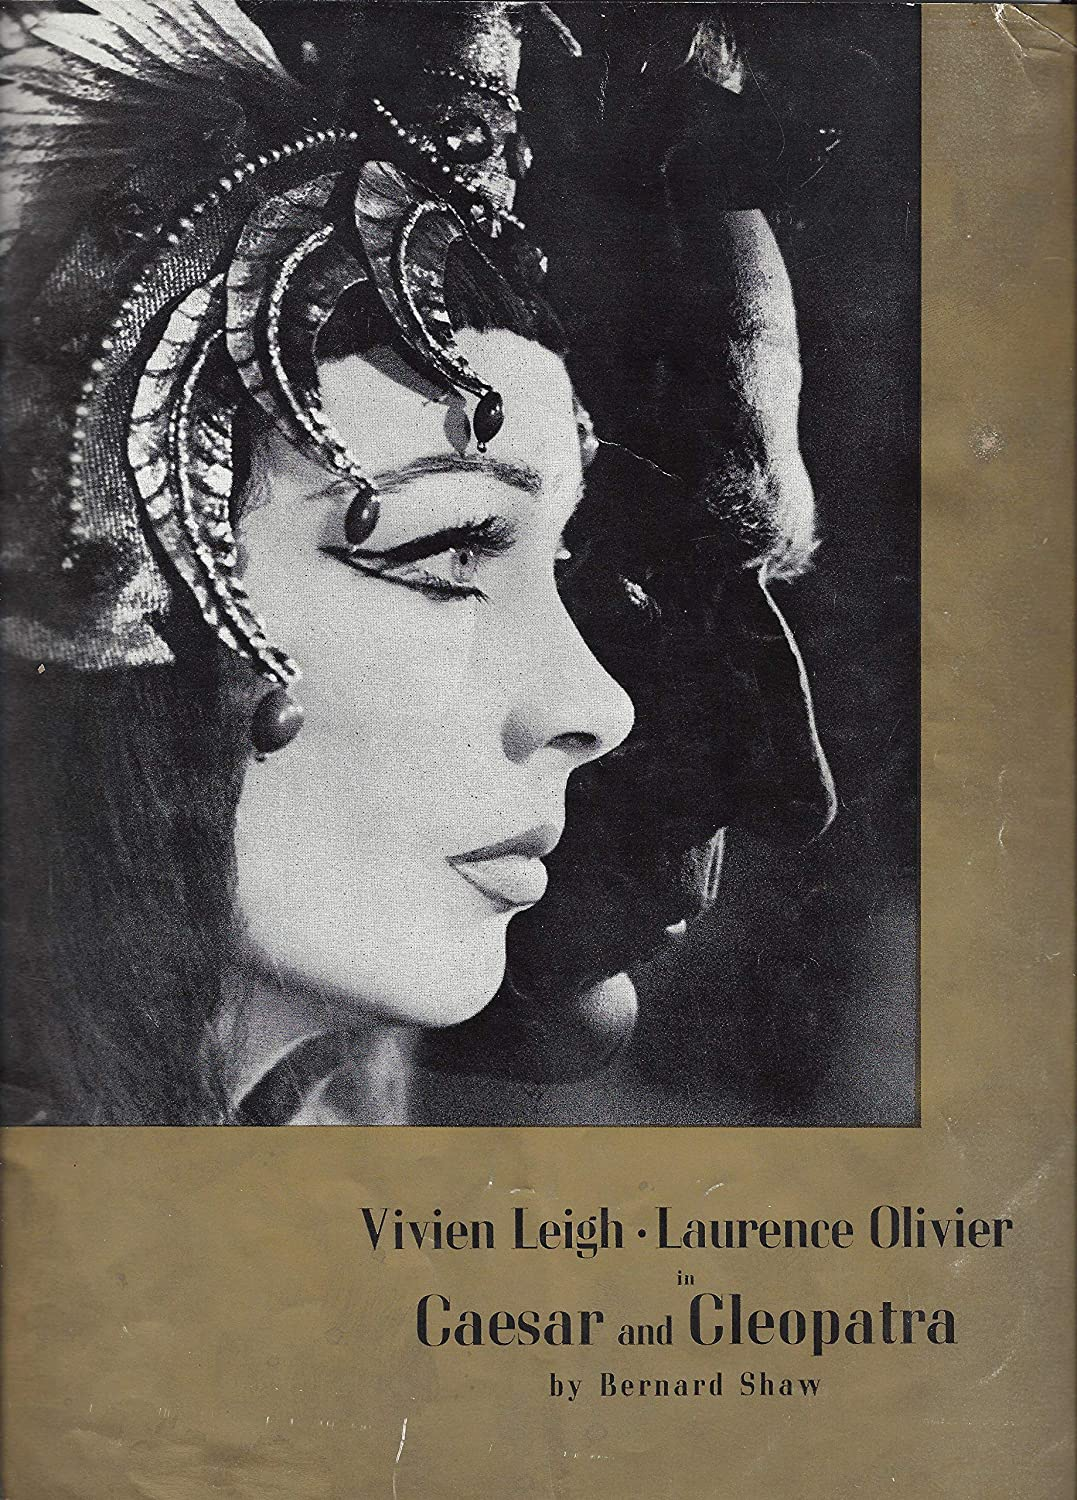 Vivien Leigh'CAESAR and CLEOPATRA' Laurence Olivier/Bernard Shaw 1951 Souvenir Program